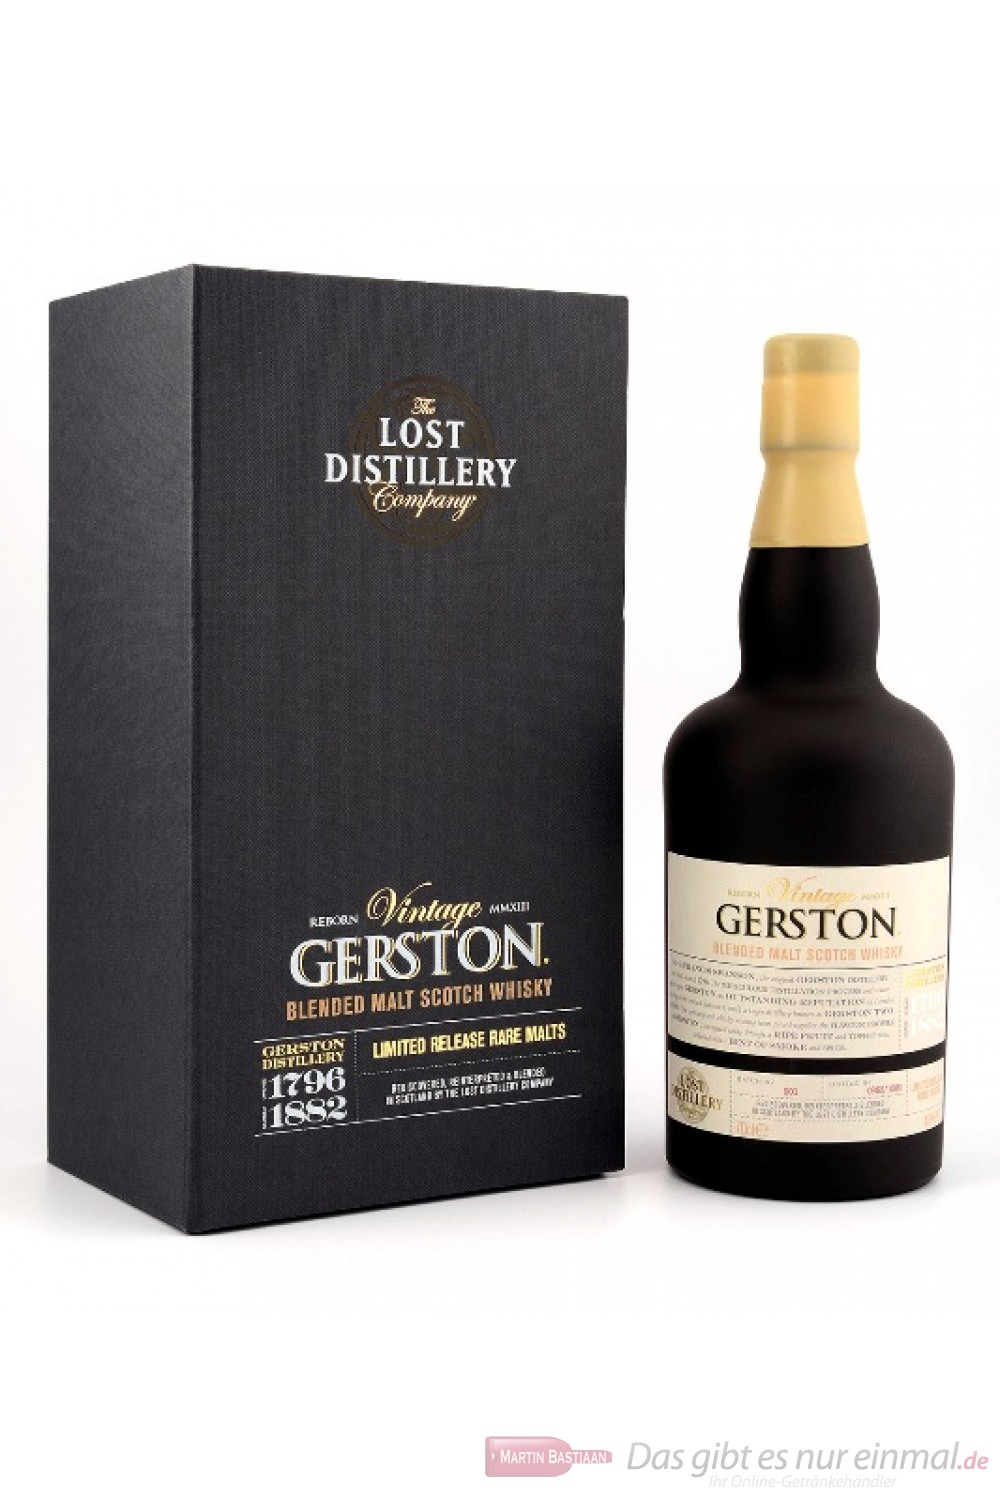 The Lost Distillery Gerston Vintage